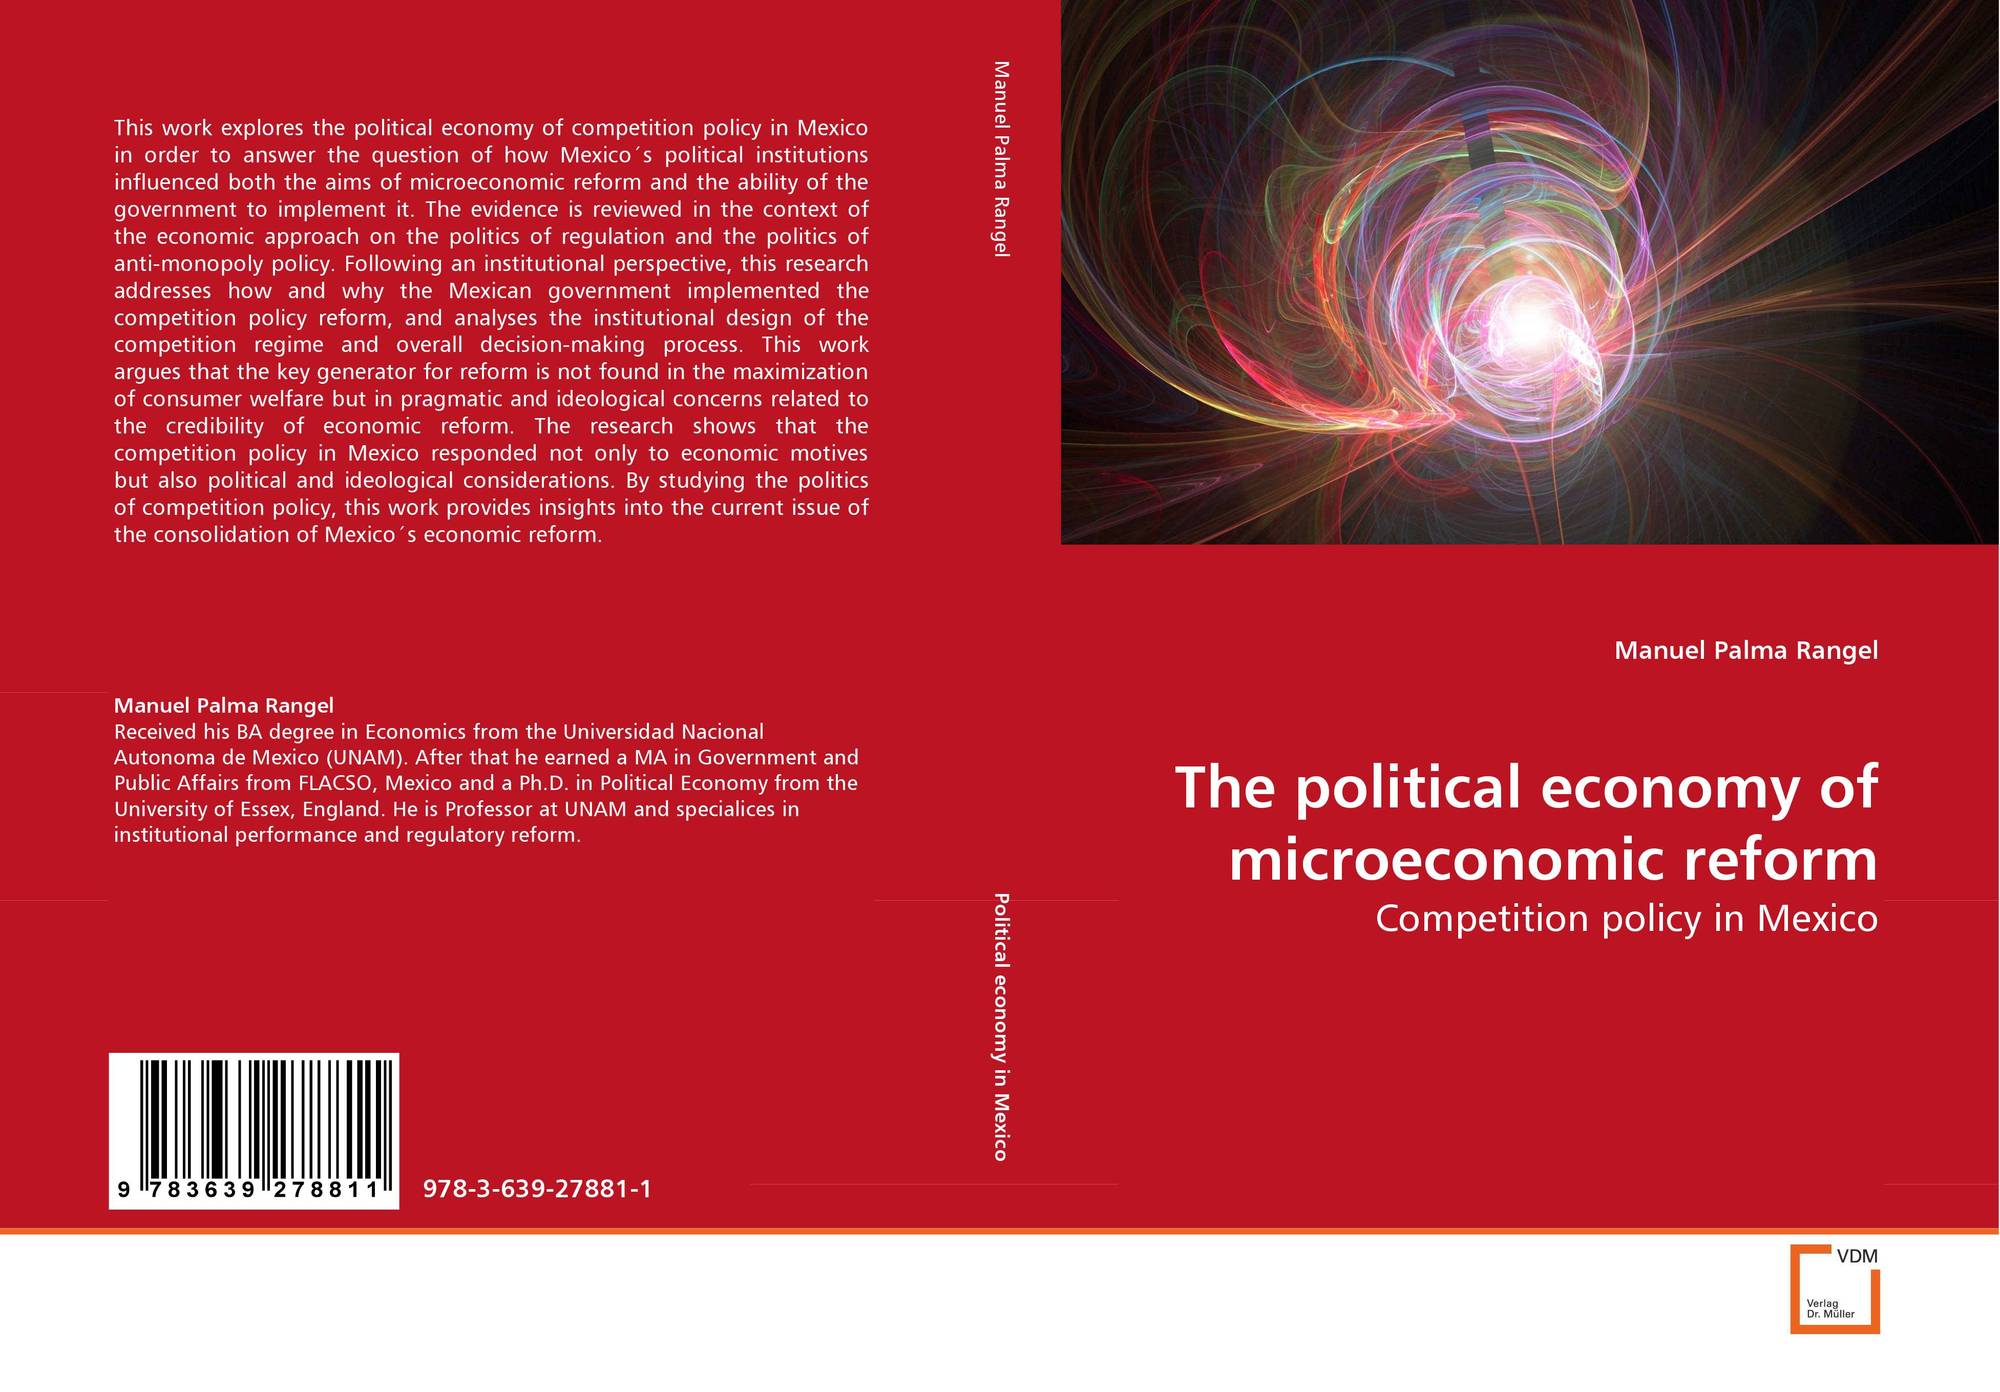 micro economics affairs Economics courtesy reuters more topics business economic development finance foreign aid globalization labor monetary issues read foreign affairs in your inbox.